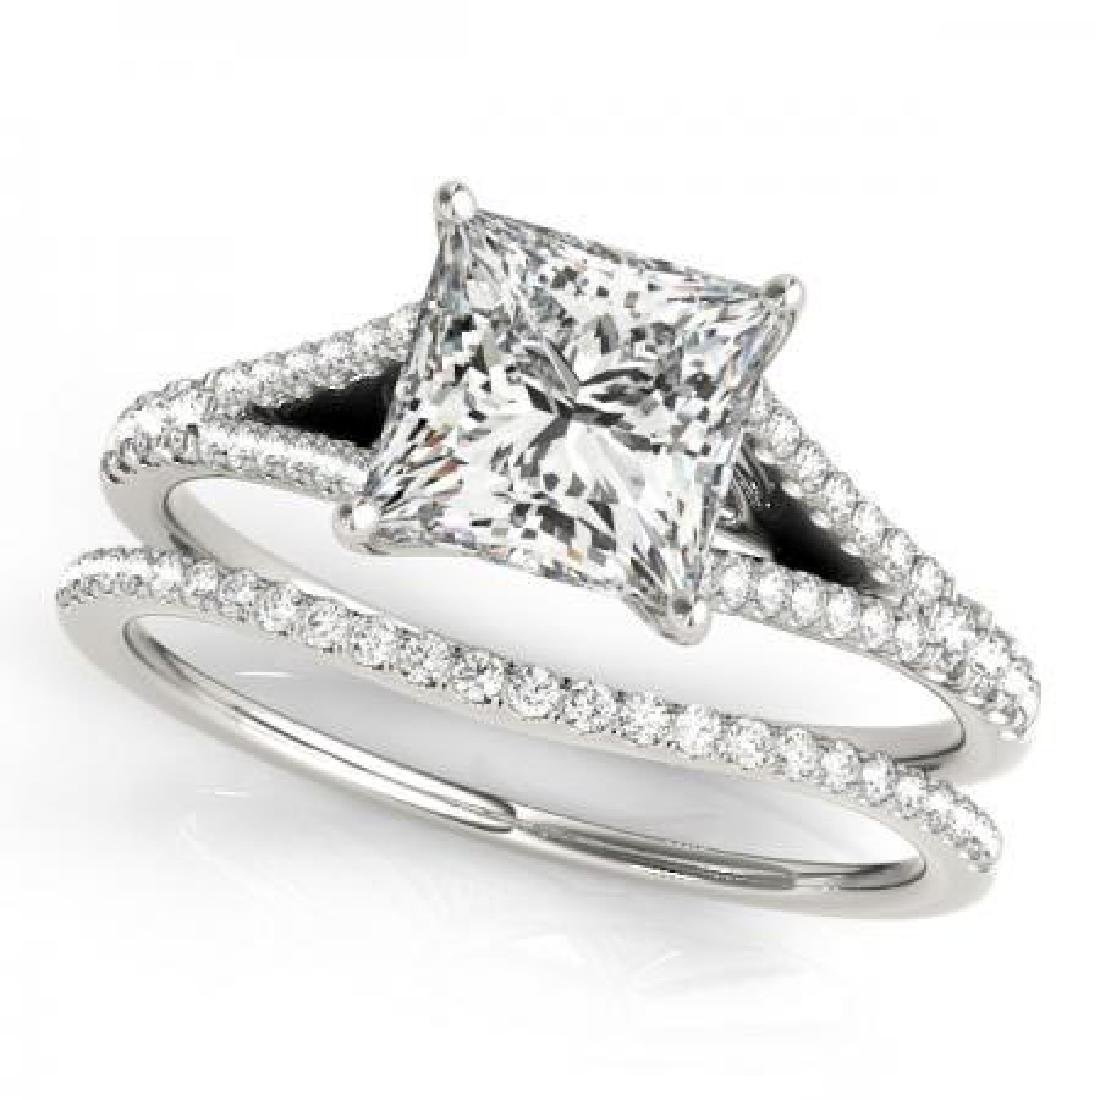 CERTIFIED PLATINUM 1.28 CT G-H/VS-SI1 DIAMOND BRIDAL SE